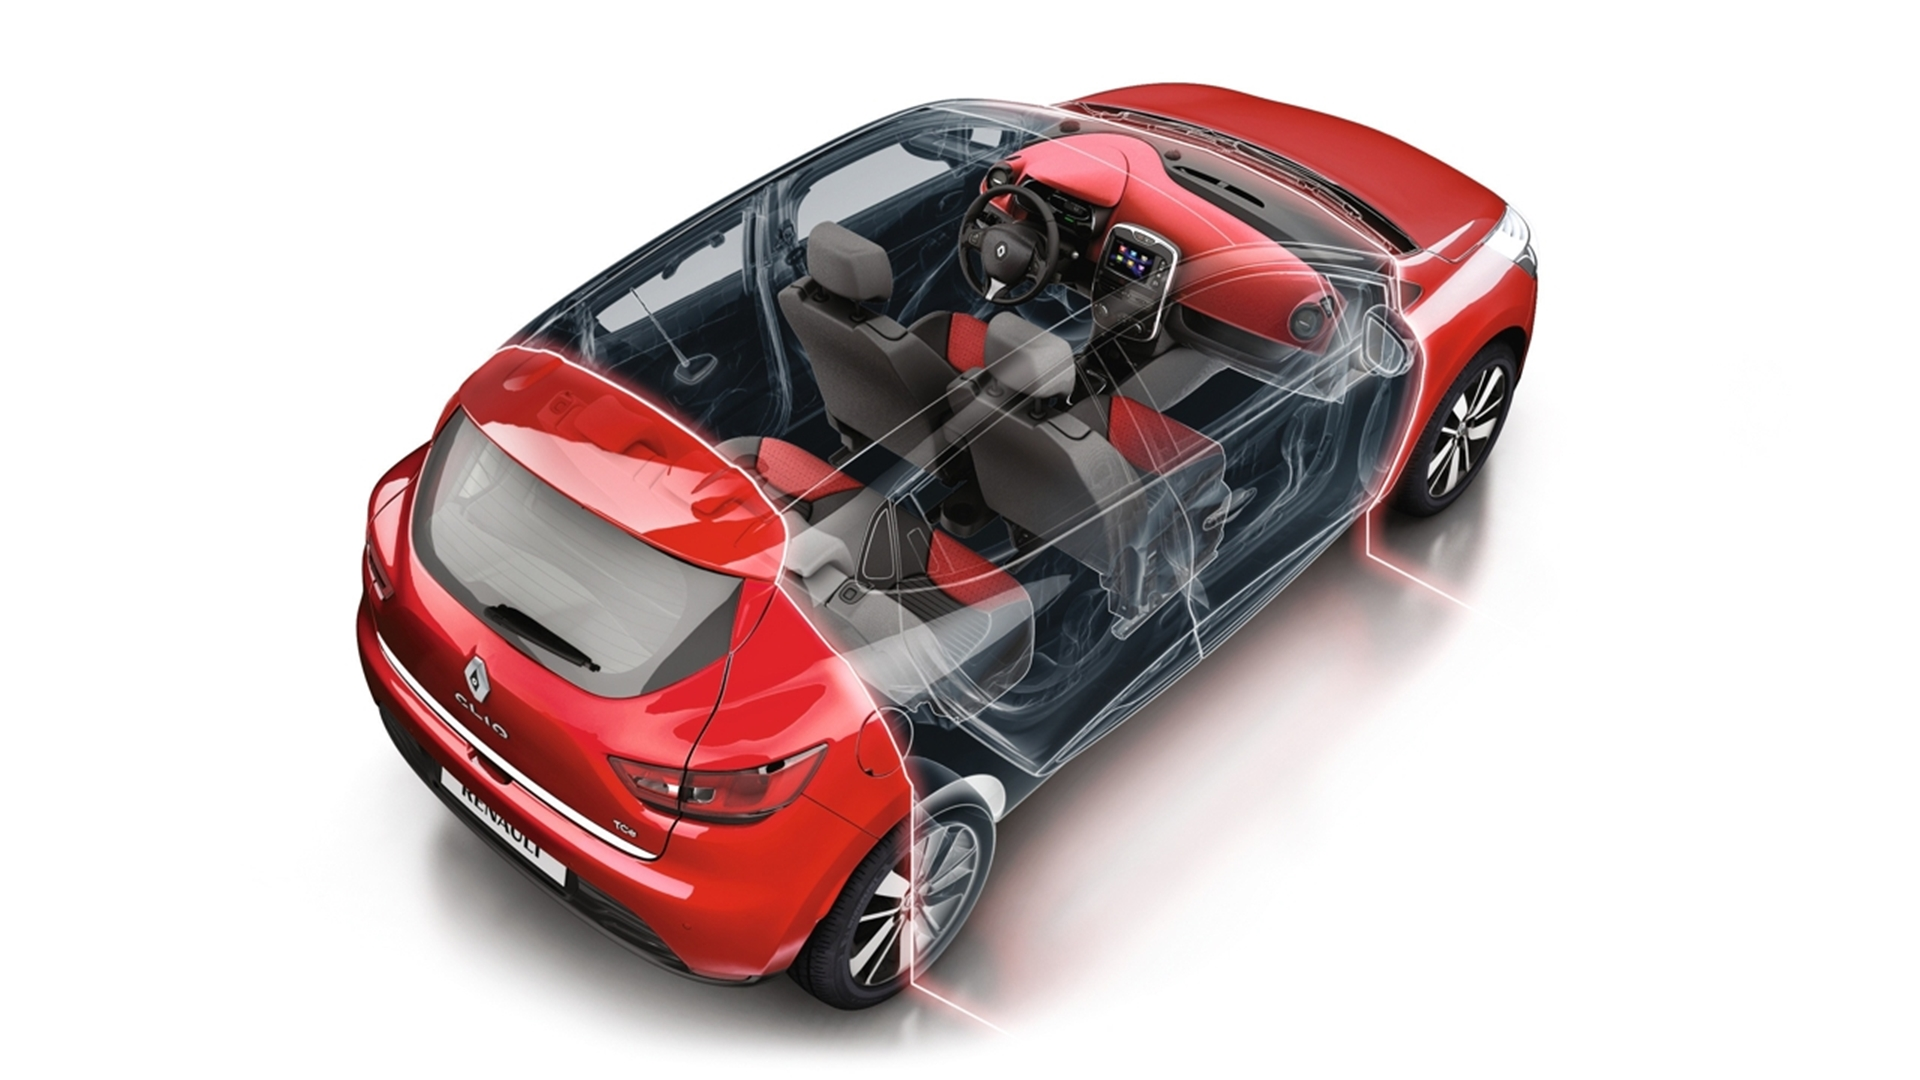 Renault Clio Technology 2012